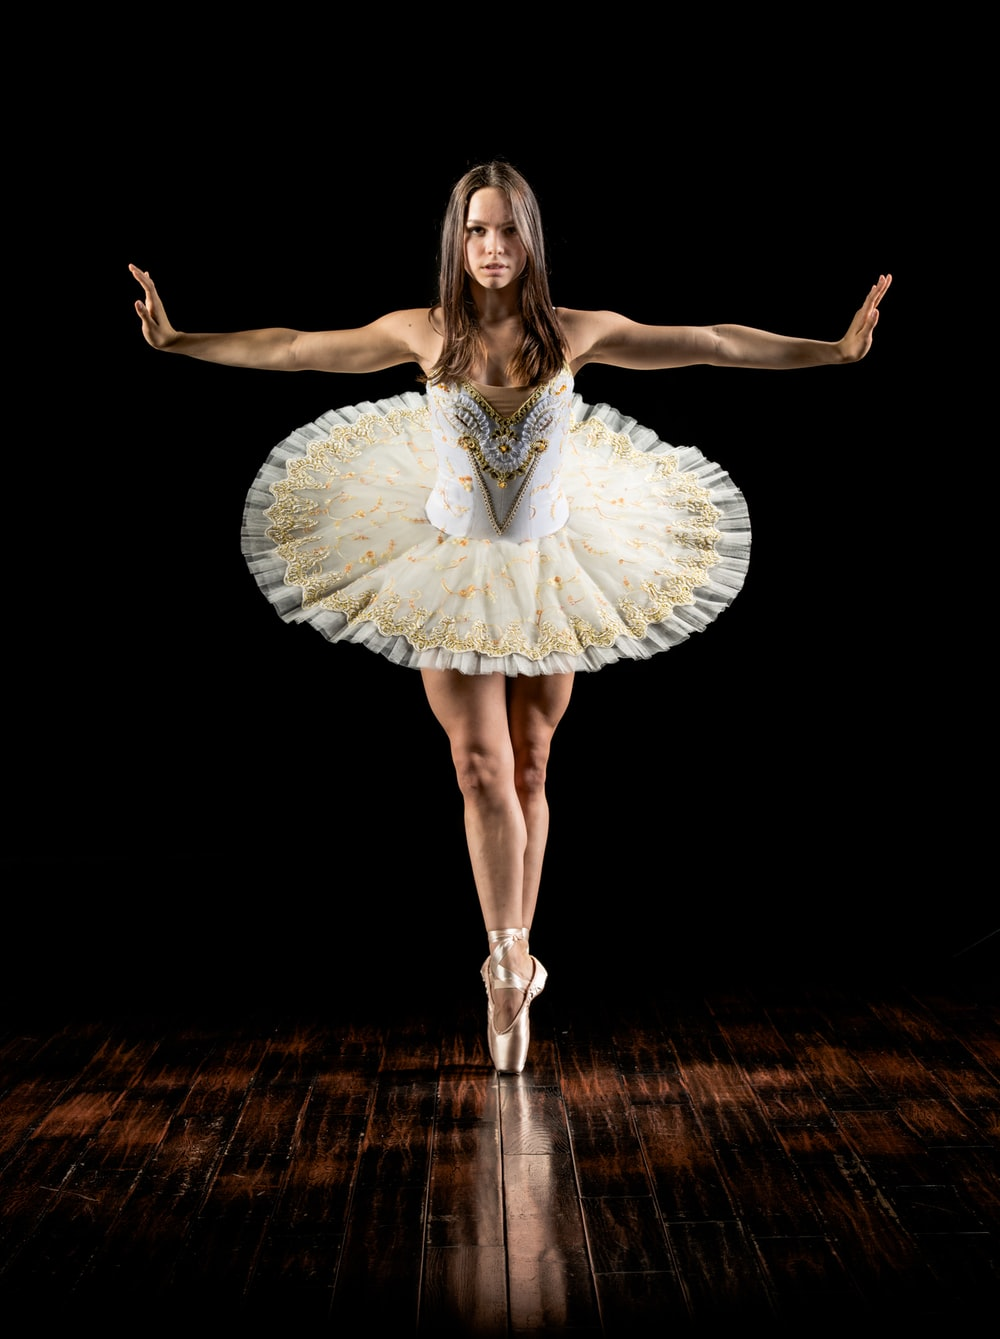 ballerina pictures download free images stock photos on unsplash